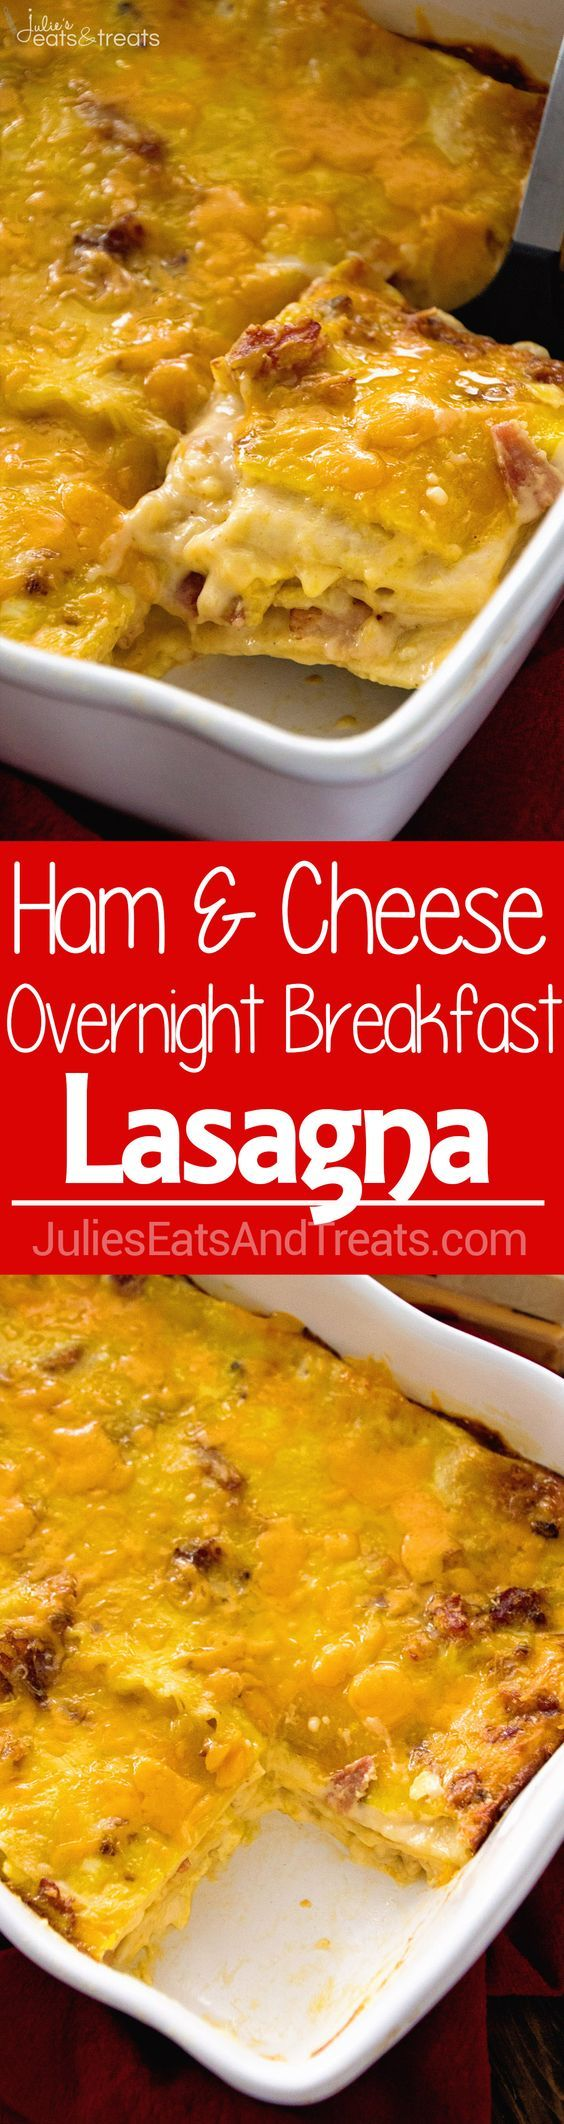 Ham & Cheese Overnight Breakfast Lasagna Recipe ~ Layers of Lasagna Noodles Stuffed with a Delicious Cheese Sauce, Bacon and More Cheese! Prep this the Night Before and Enjoy it for Breakfast or Brunch! #CrystalFarmsCheese #ad @Crystal_Farms